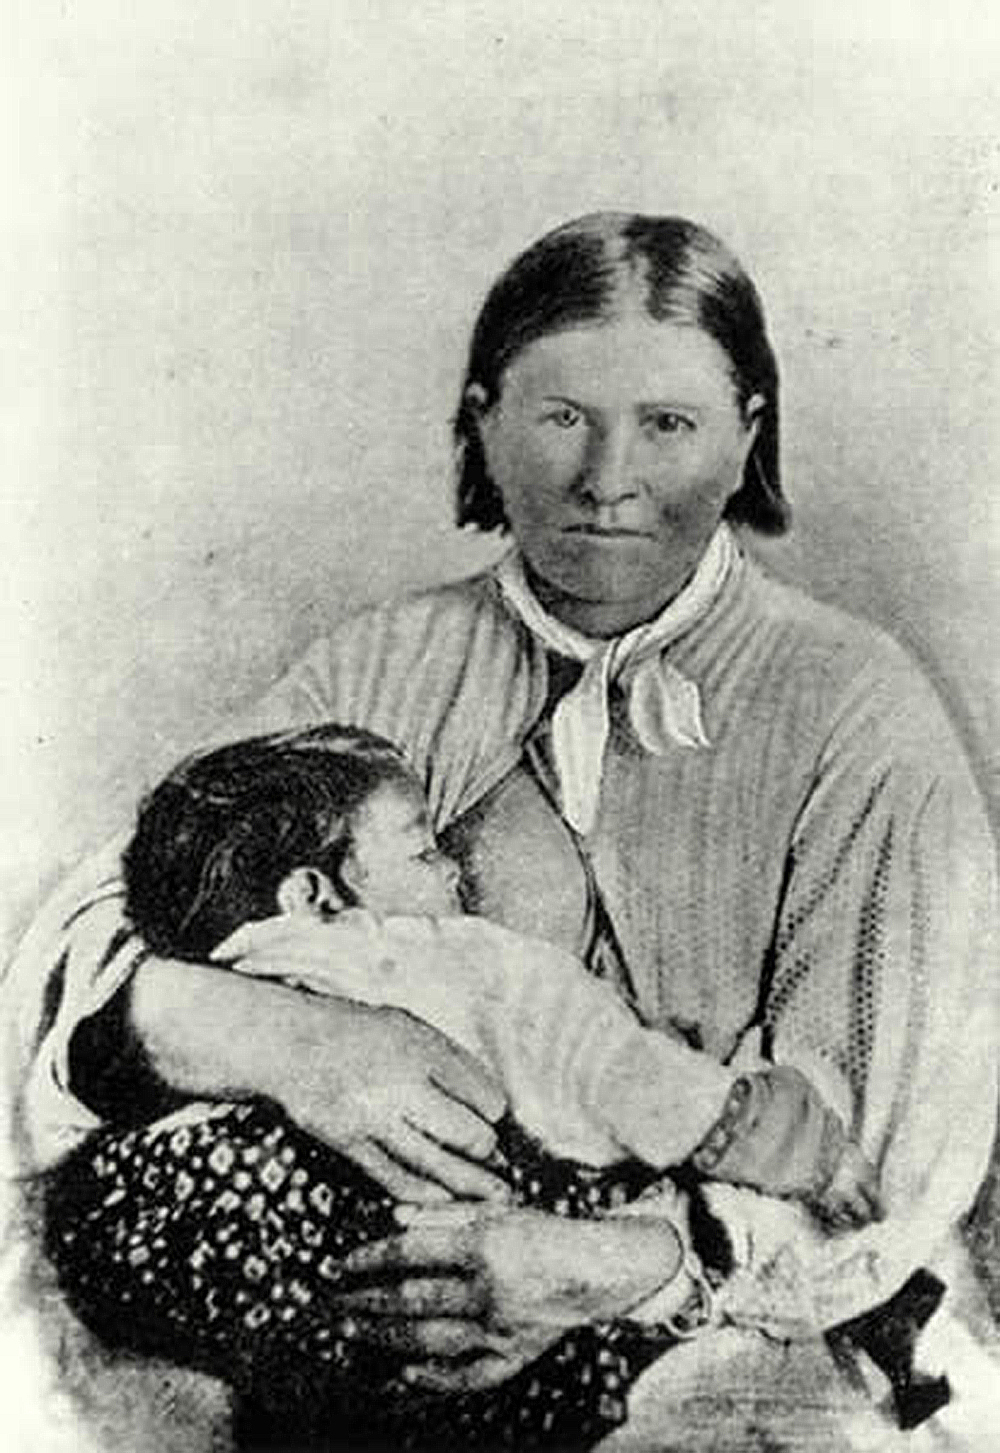 Photograph of Cynthia Ann Parker, c. 1860. Wikimedia Commons.